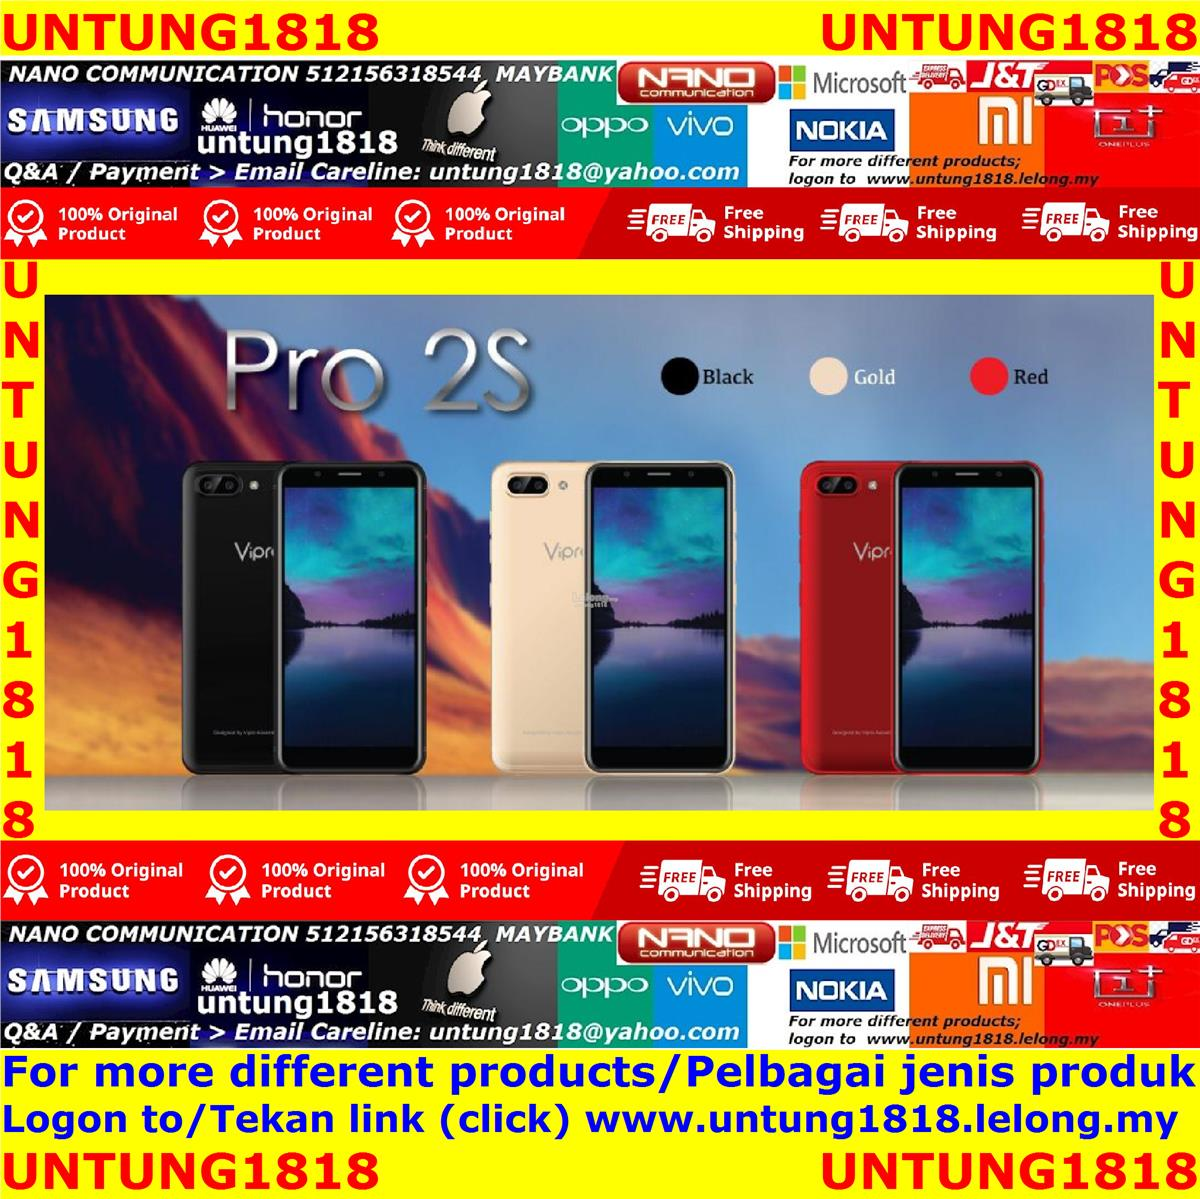 ORIGINAL A Brand By Malaysia.Pro 2S Android Smartphone